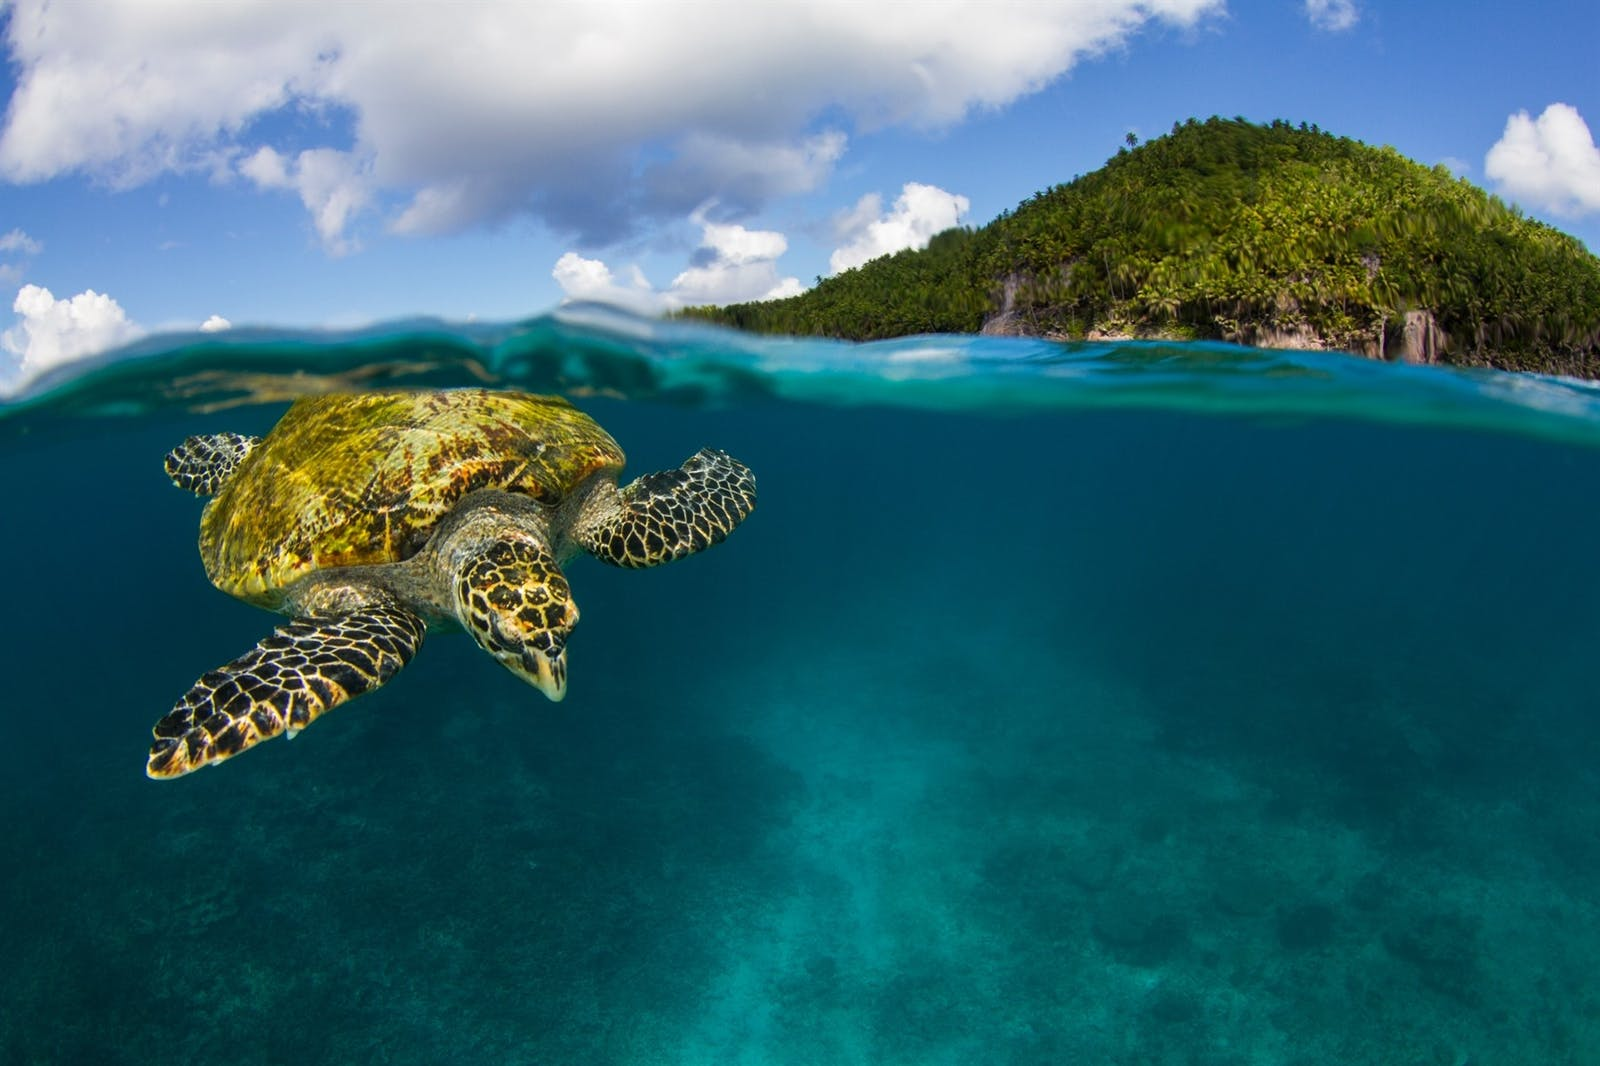 Turtle at Fregate Island Private, Seychelles, by Joe Daniels